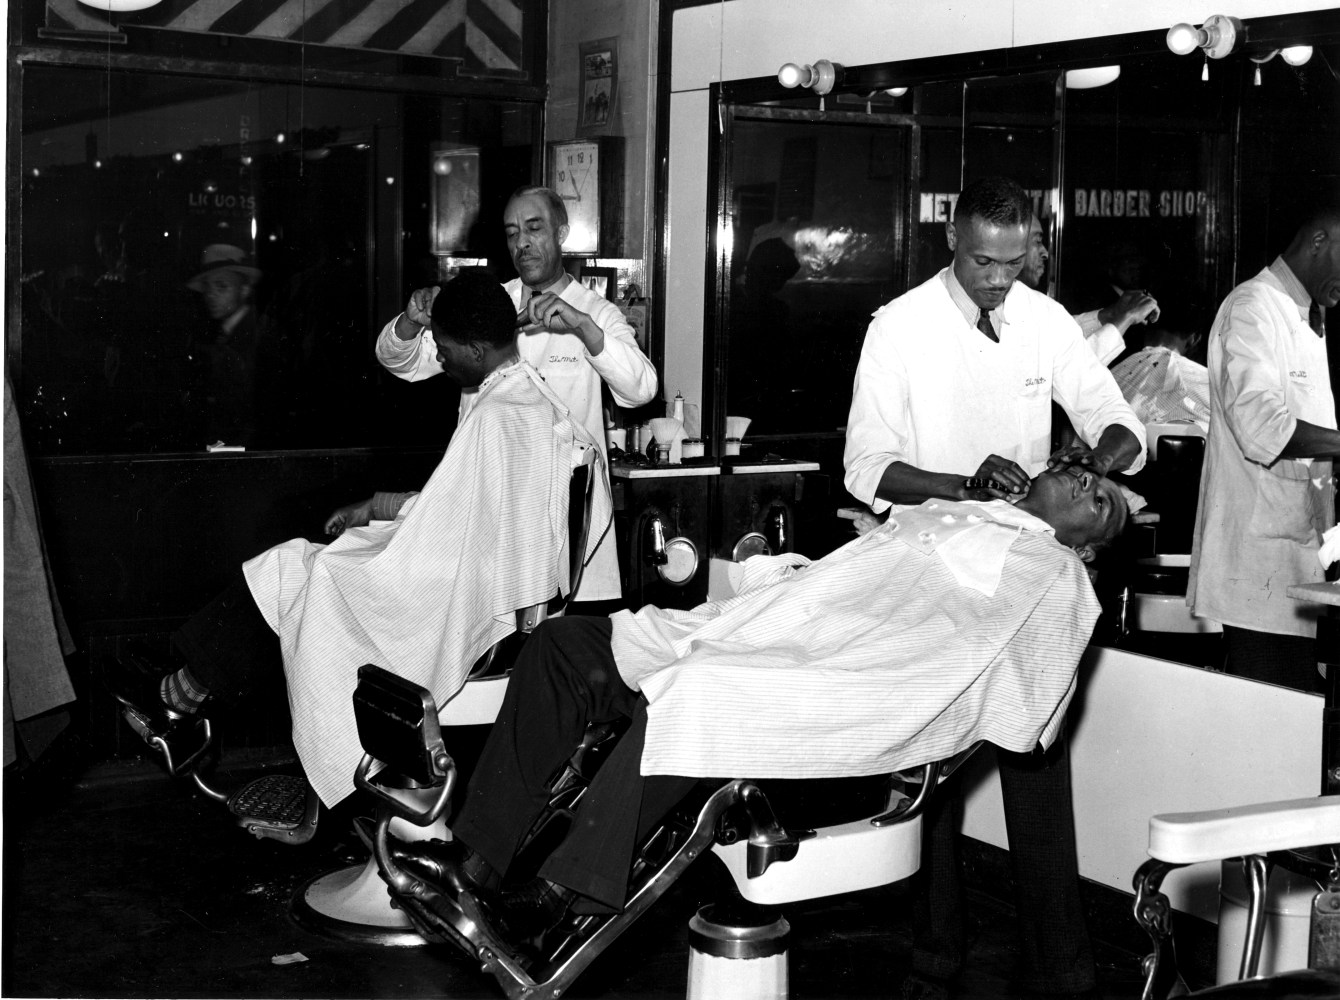 essay sharing my truth in a black barbershop nbc news late night at the met barbershop